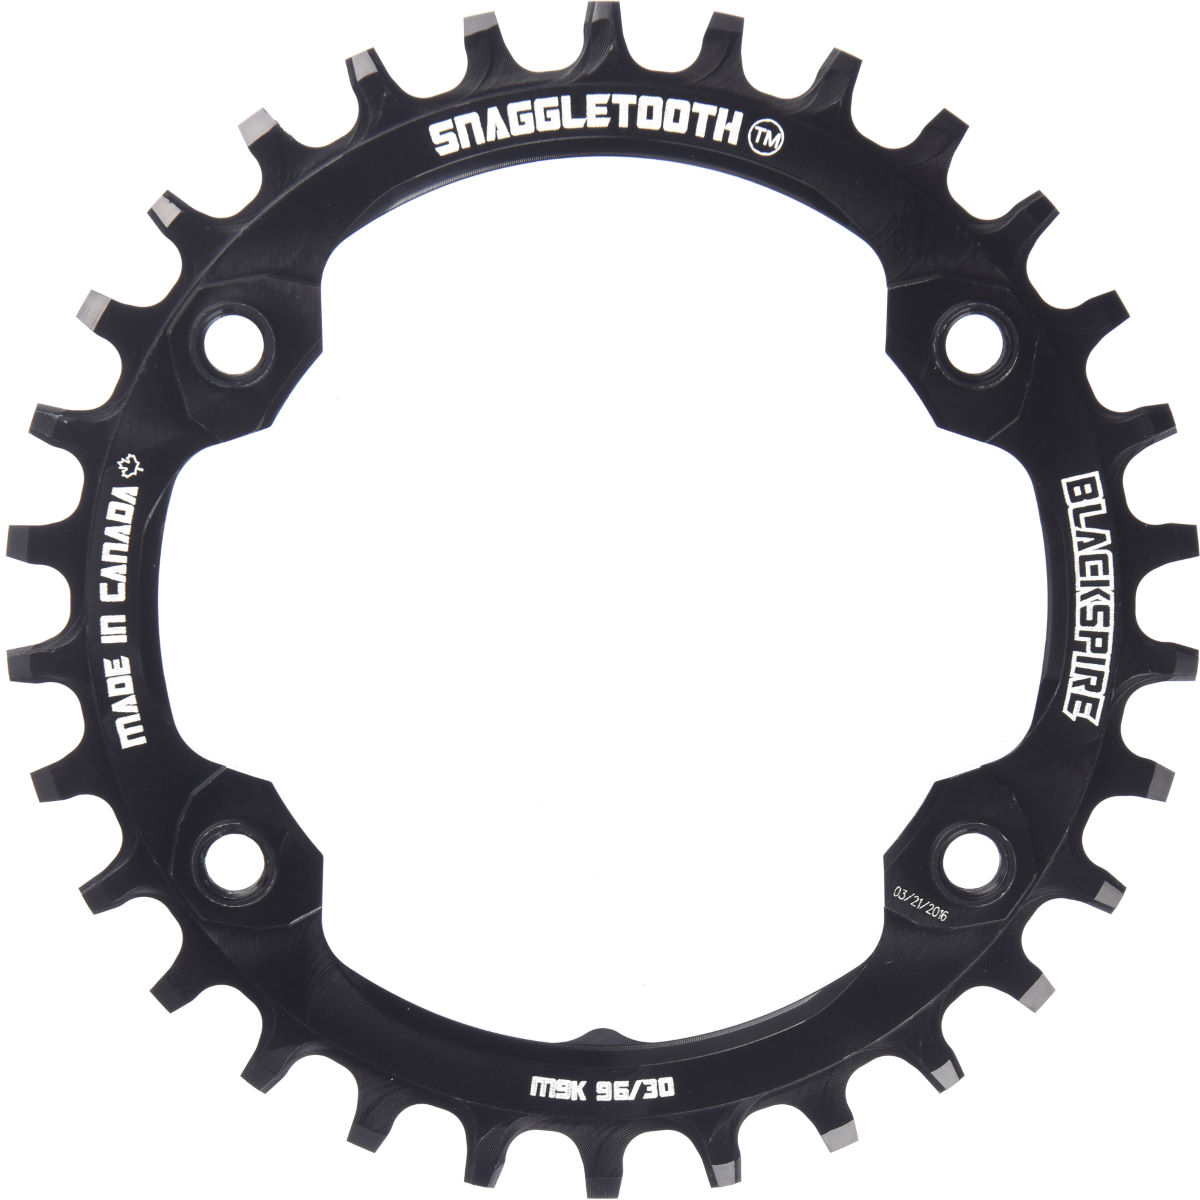 Blackspire Blackspire Snaggletooth XTR Narrow Wide Chainring   Chain Rings